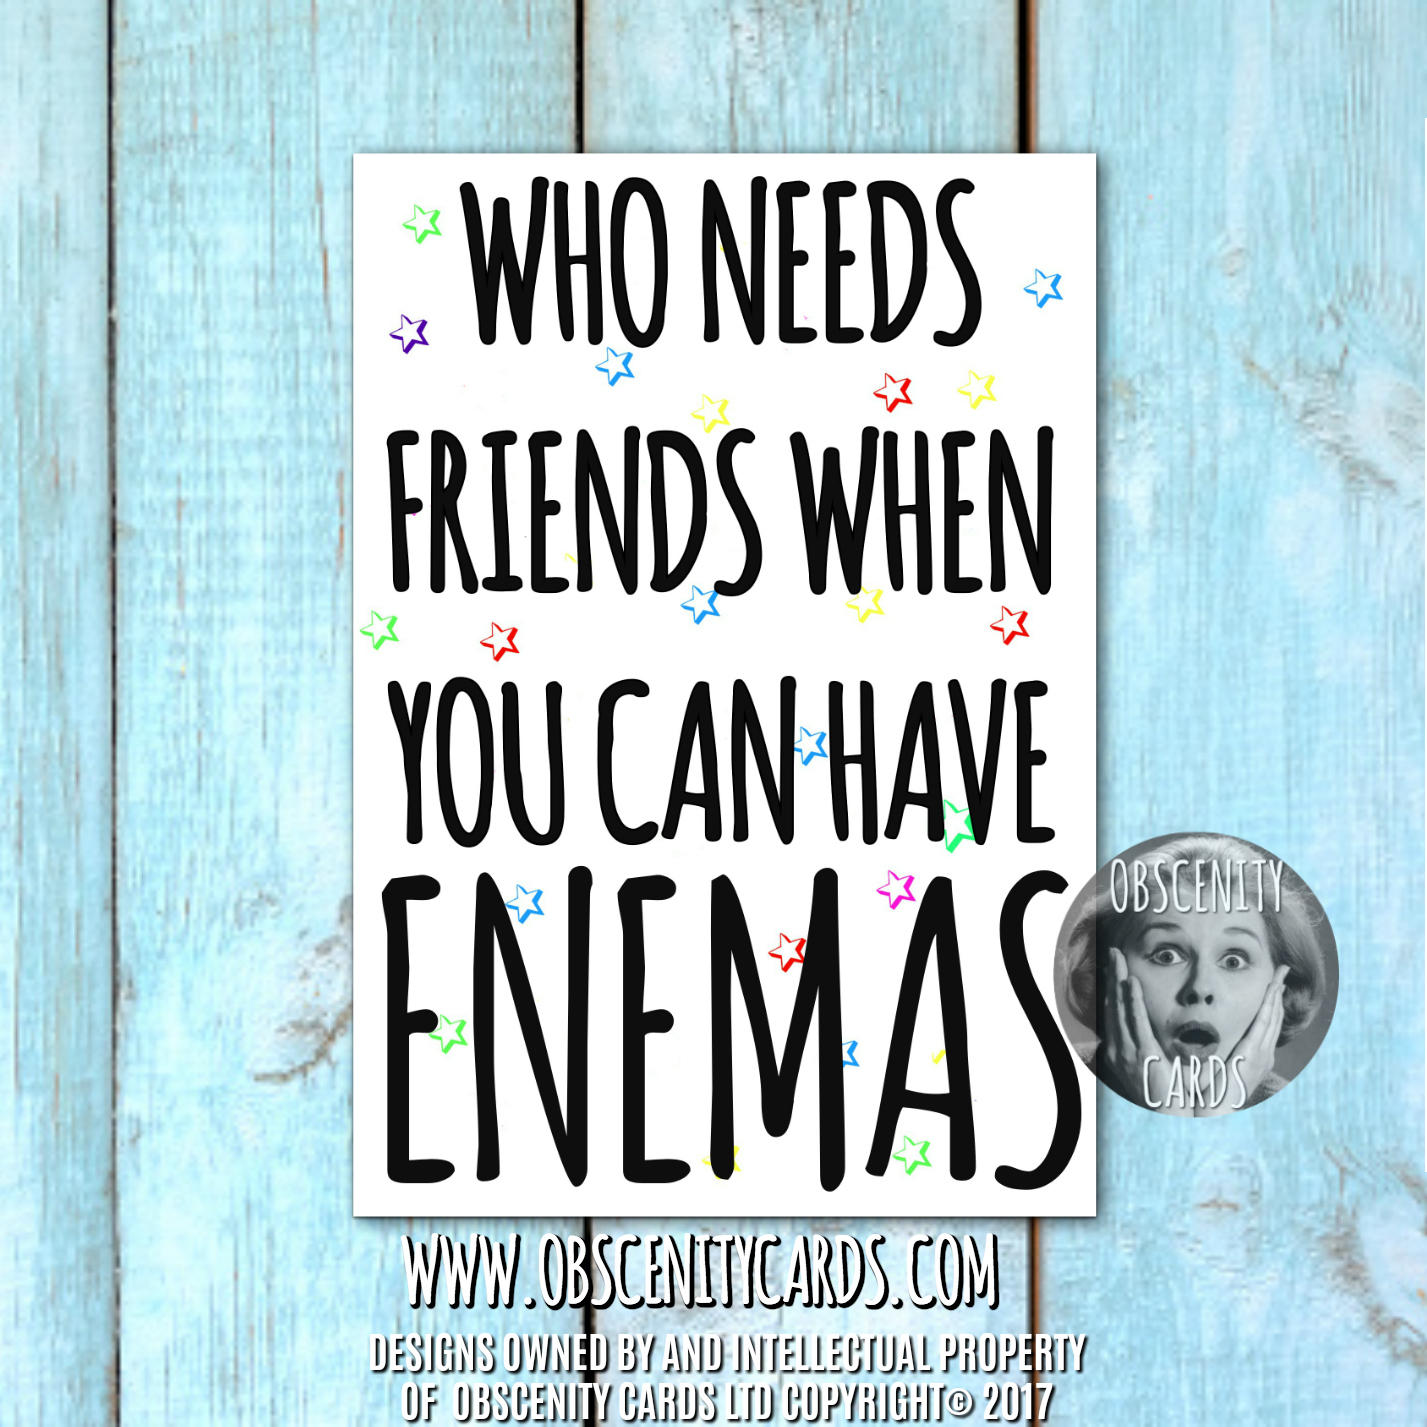 WHO NEEDS FRIENDS WHEN YOU CAN HAVE ENEMAS CARD